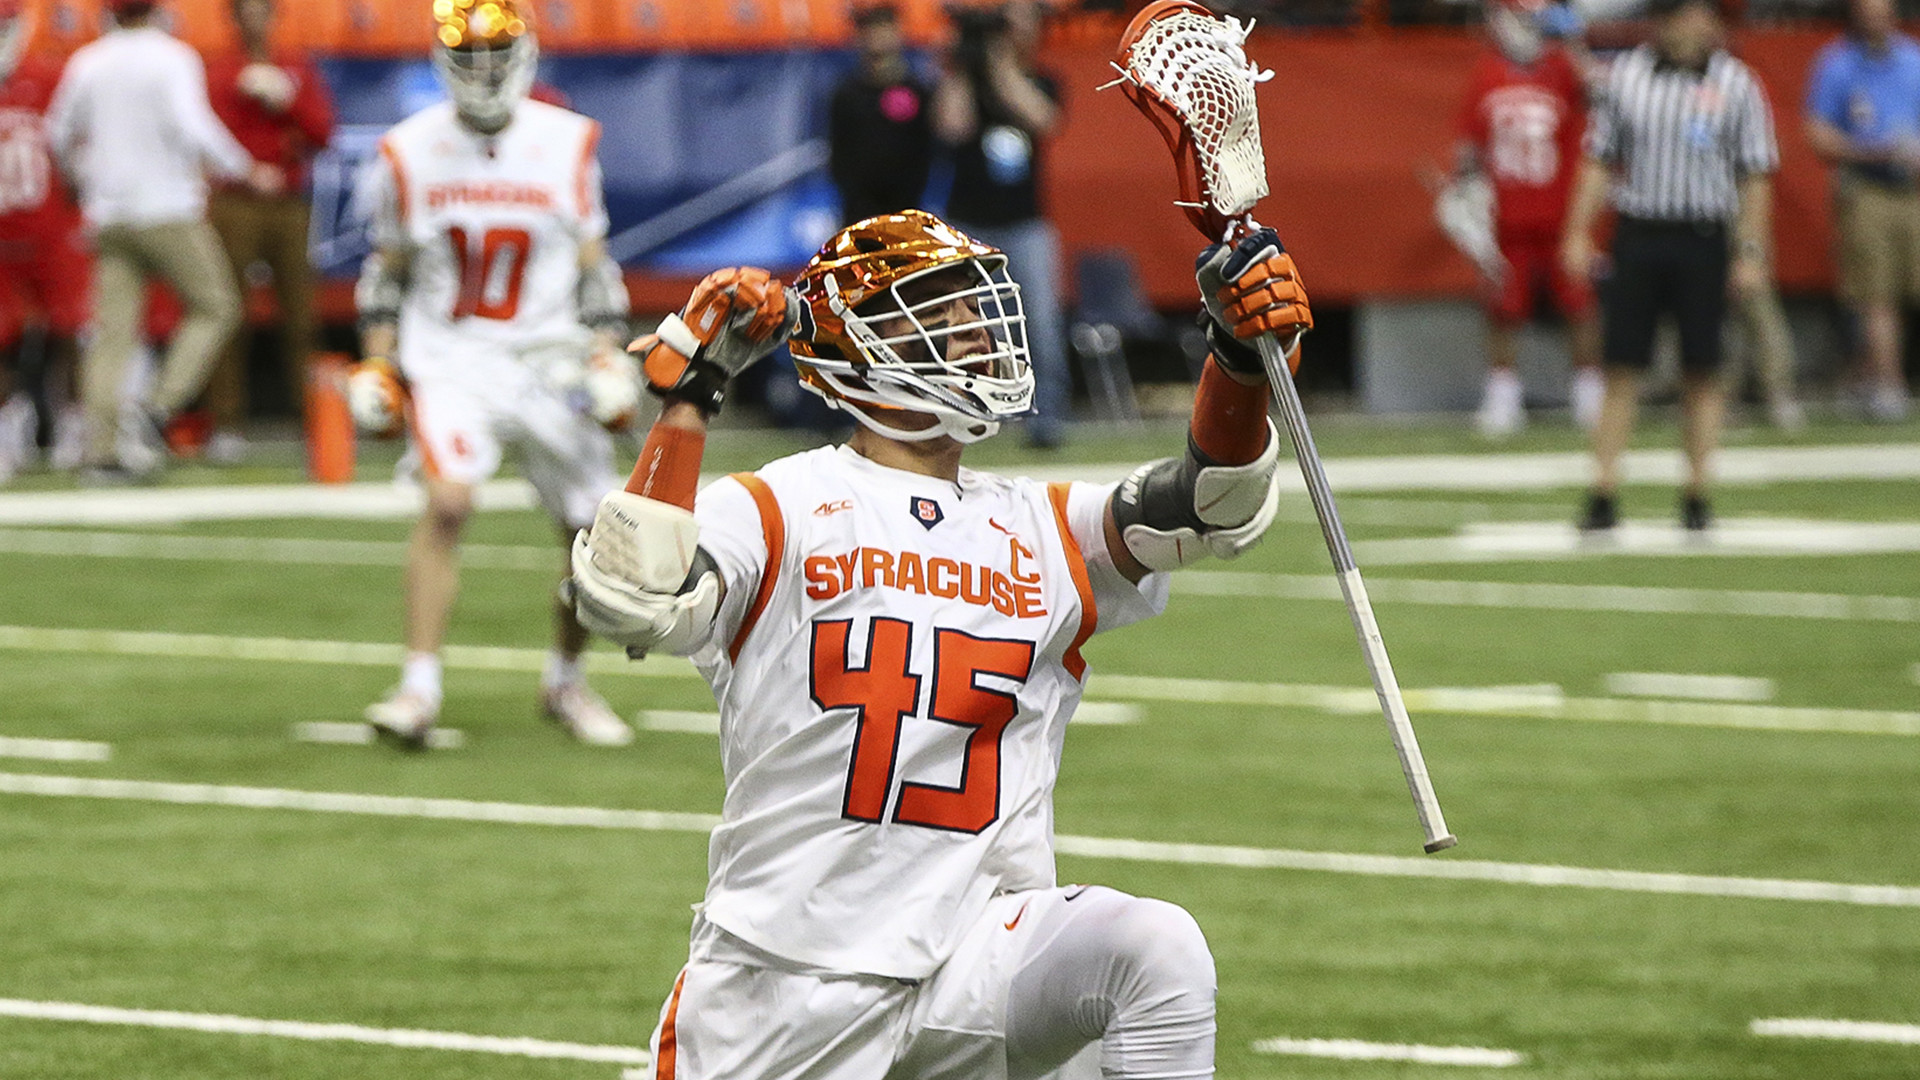 Res: 1920x1080, Syracuse Lacrosse Wallpapers